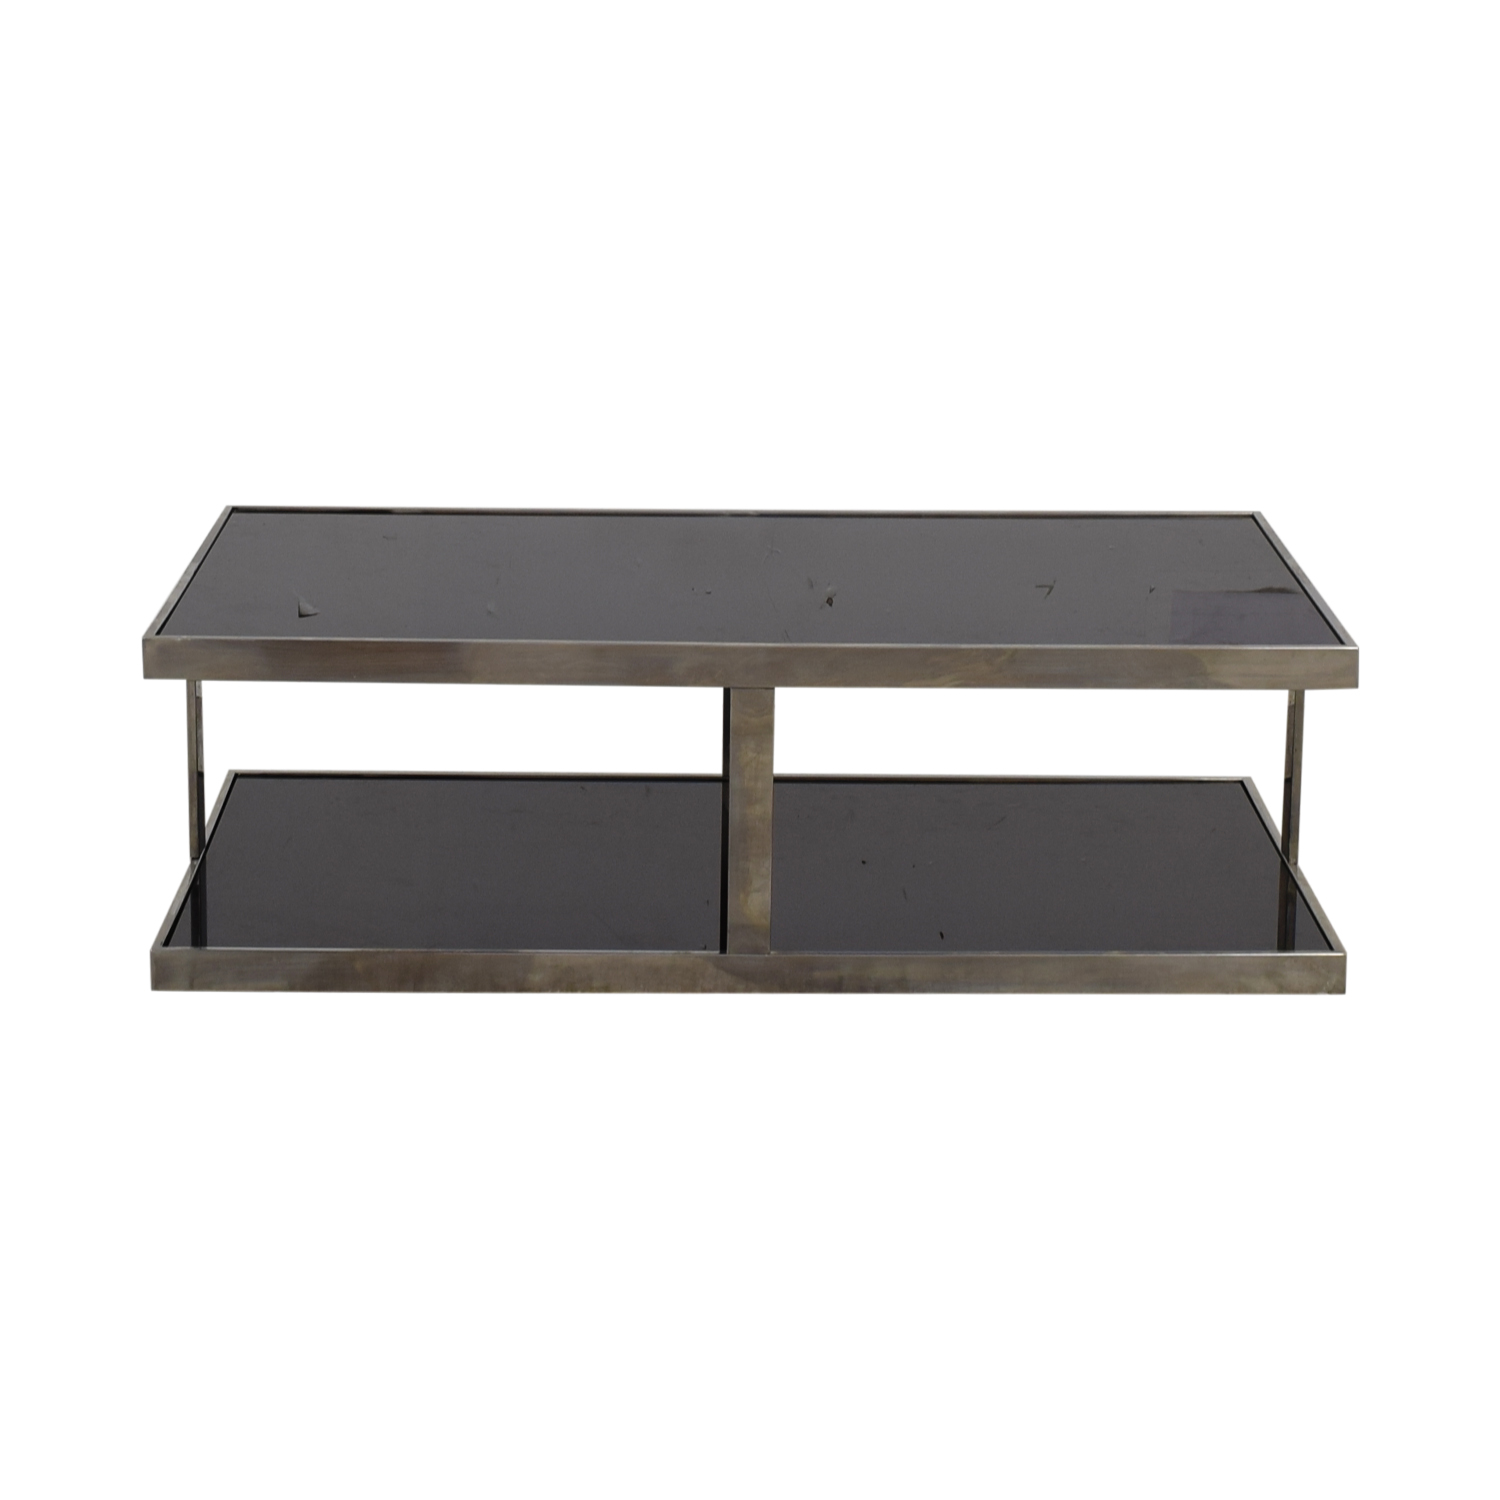 Modway Furniture Modway Furniture Absorb Black Coffee Table price